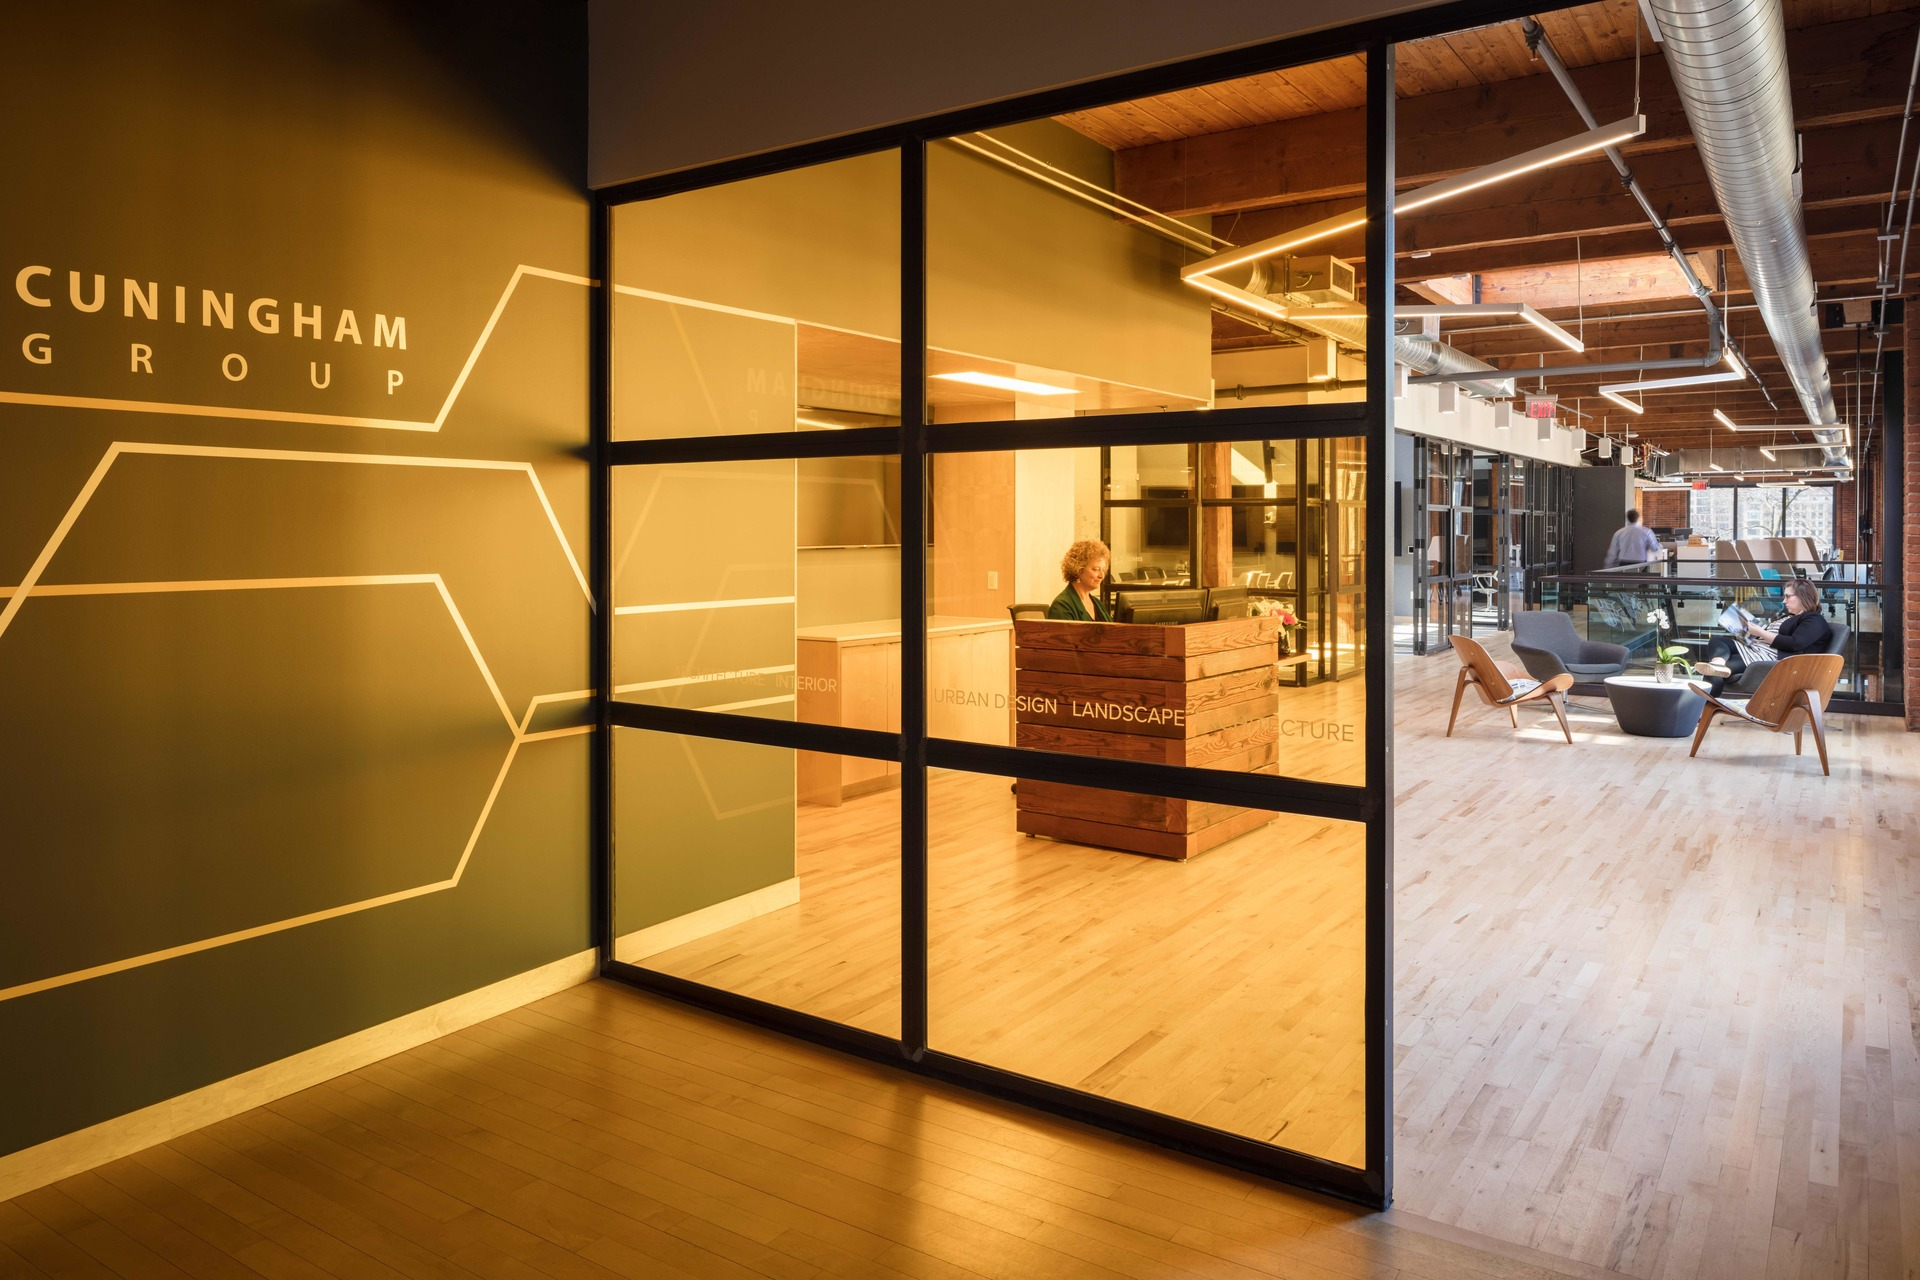 The beautiful entrance into the office featuring warm tinted glass and high-end finishes provides a welcoming atmosphere for guests and visitors.